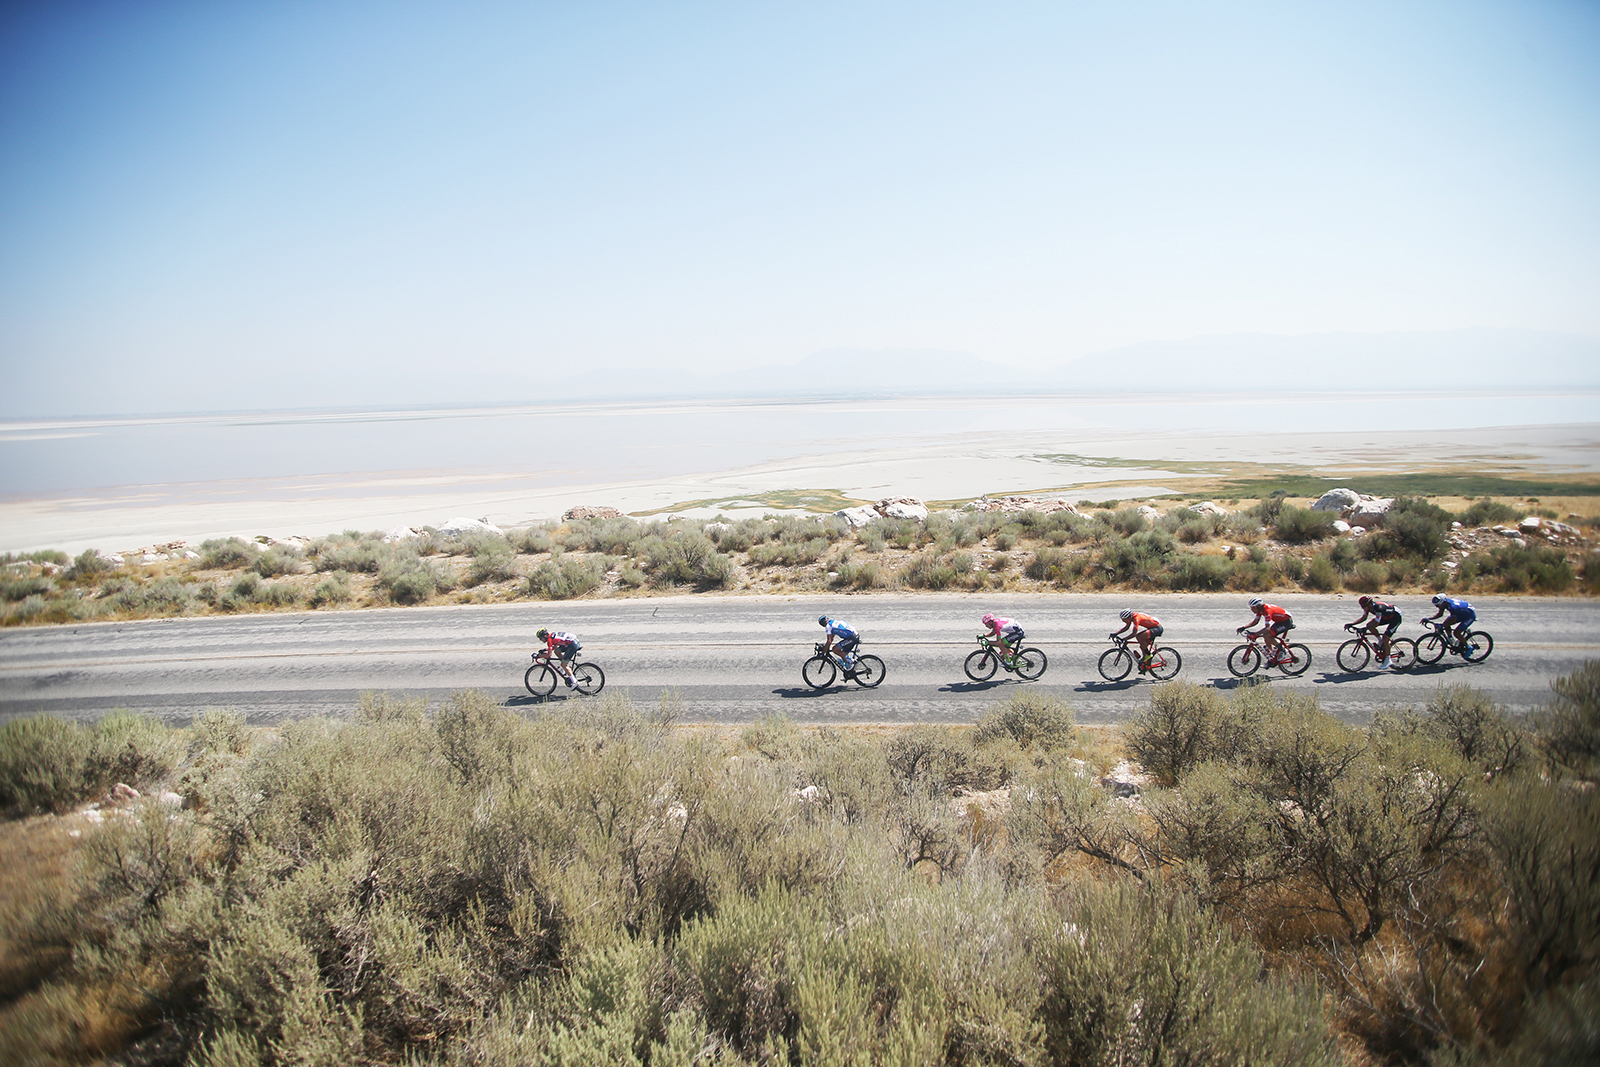 Riders try to initiate a break. 2018 Tour of Utah Stage 3, August 8, 2018, Layton, Utah. Photo by Cathy Fegan-Kim, cottonsoxphotography.net